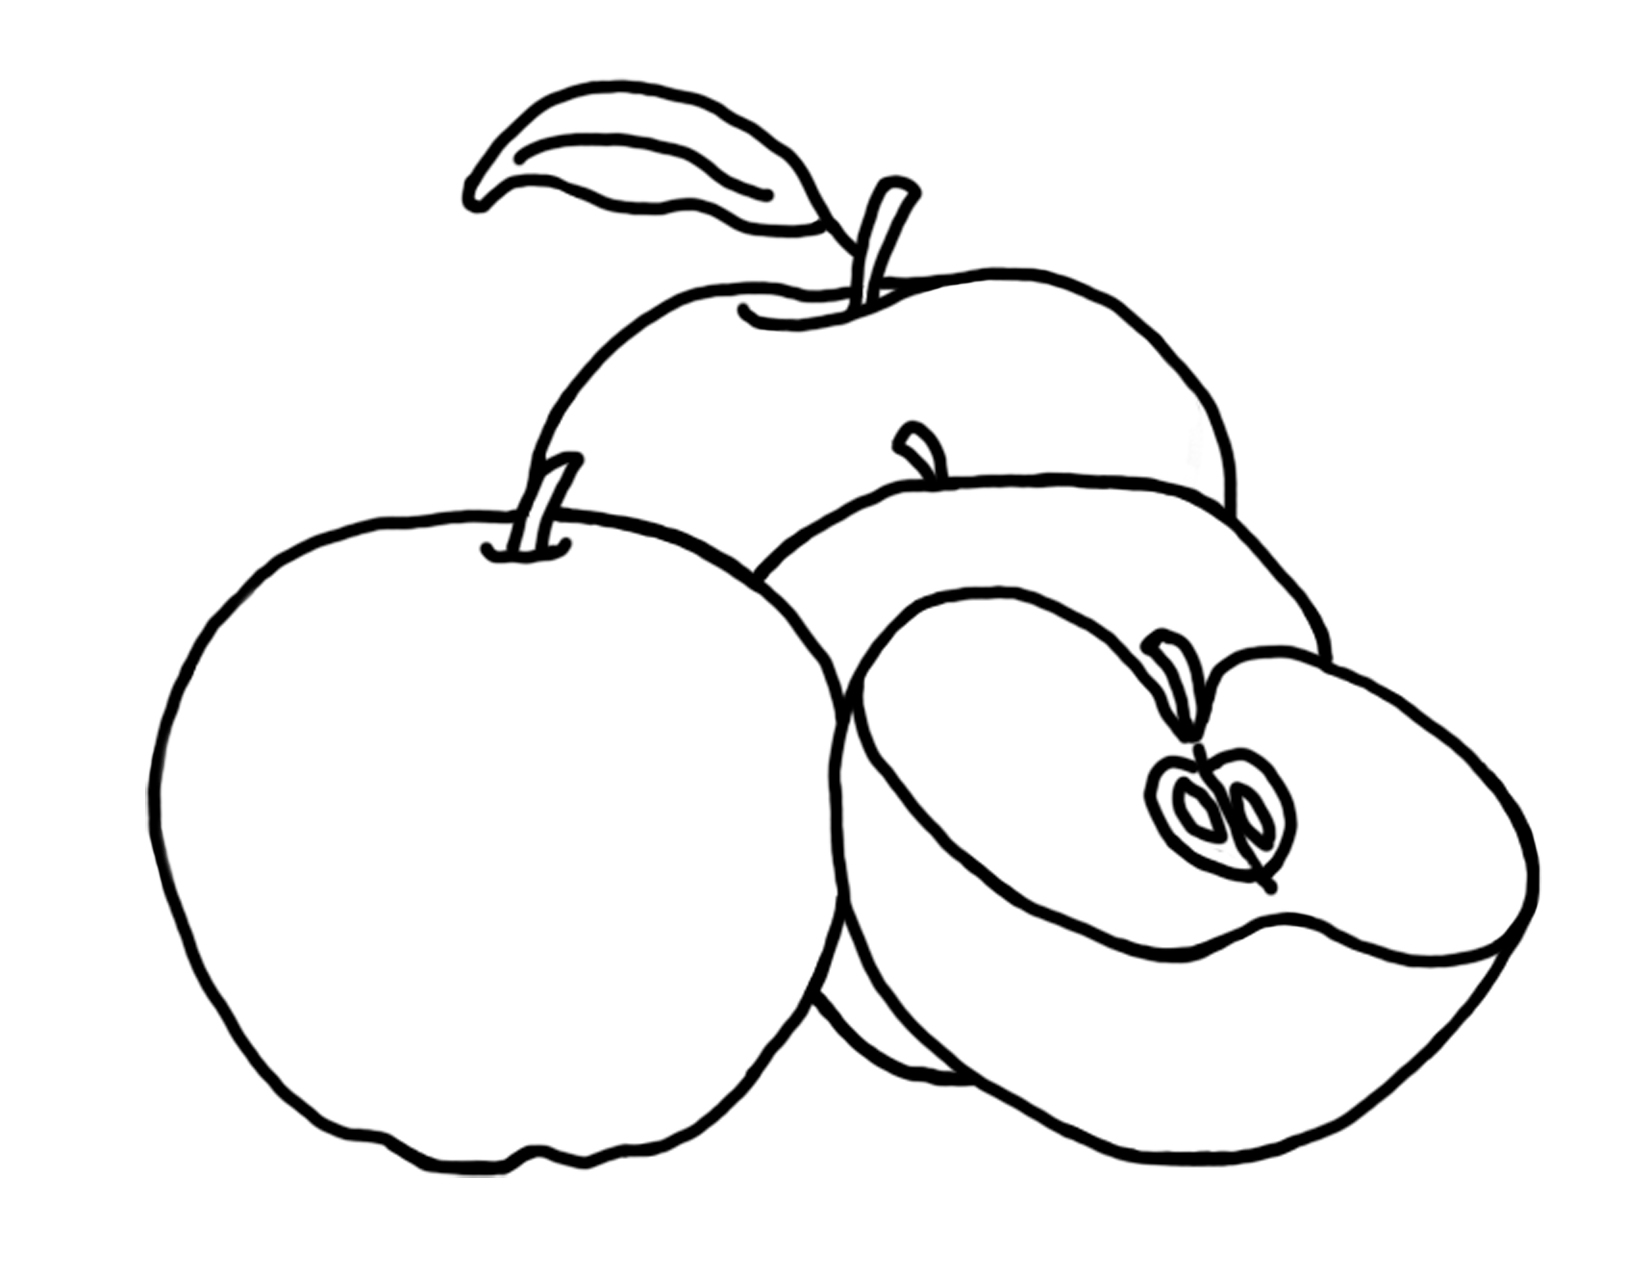 Free Printable Apple Coloring Pages For Kids Free Apple Coloring Pages